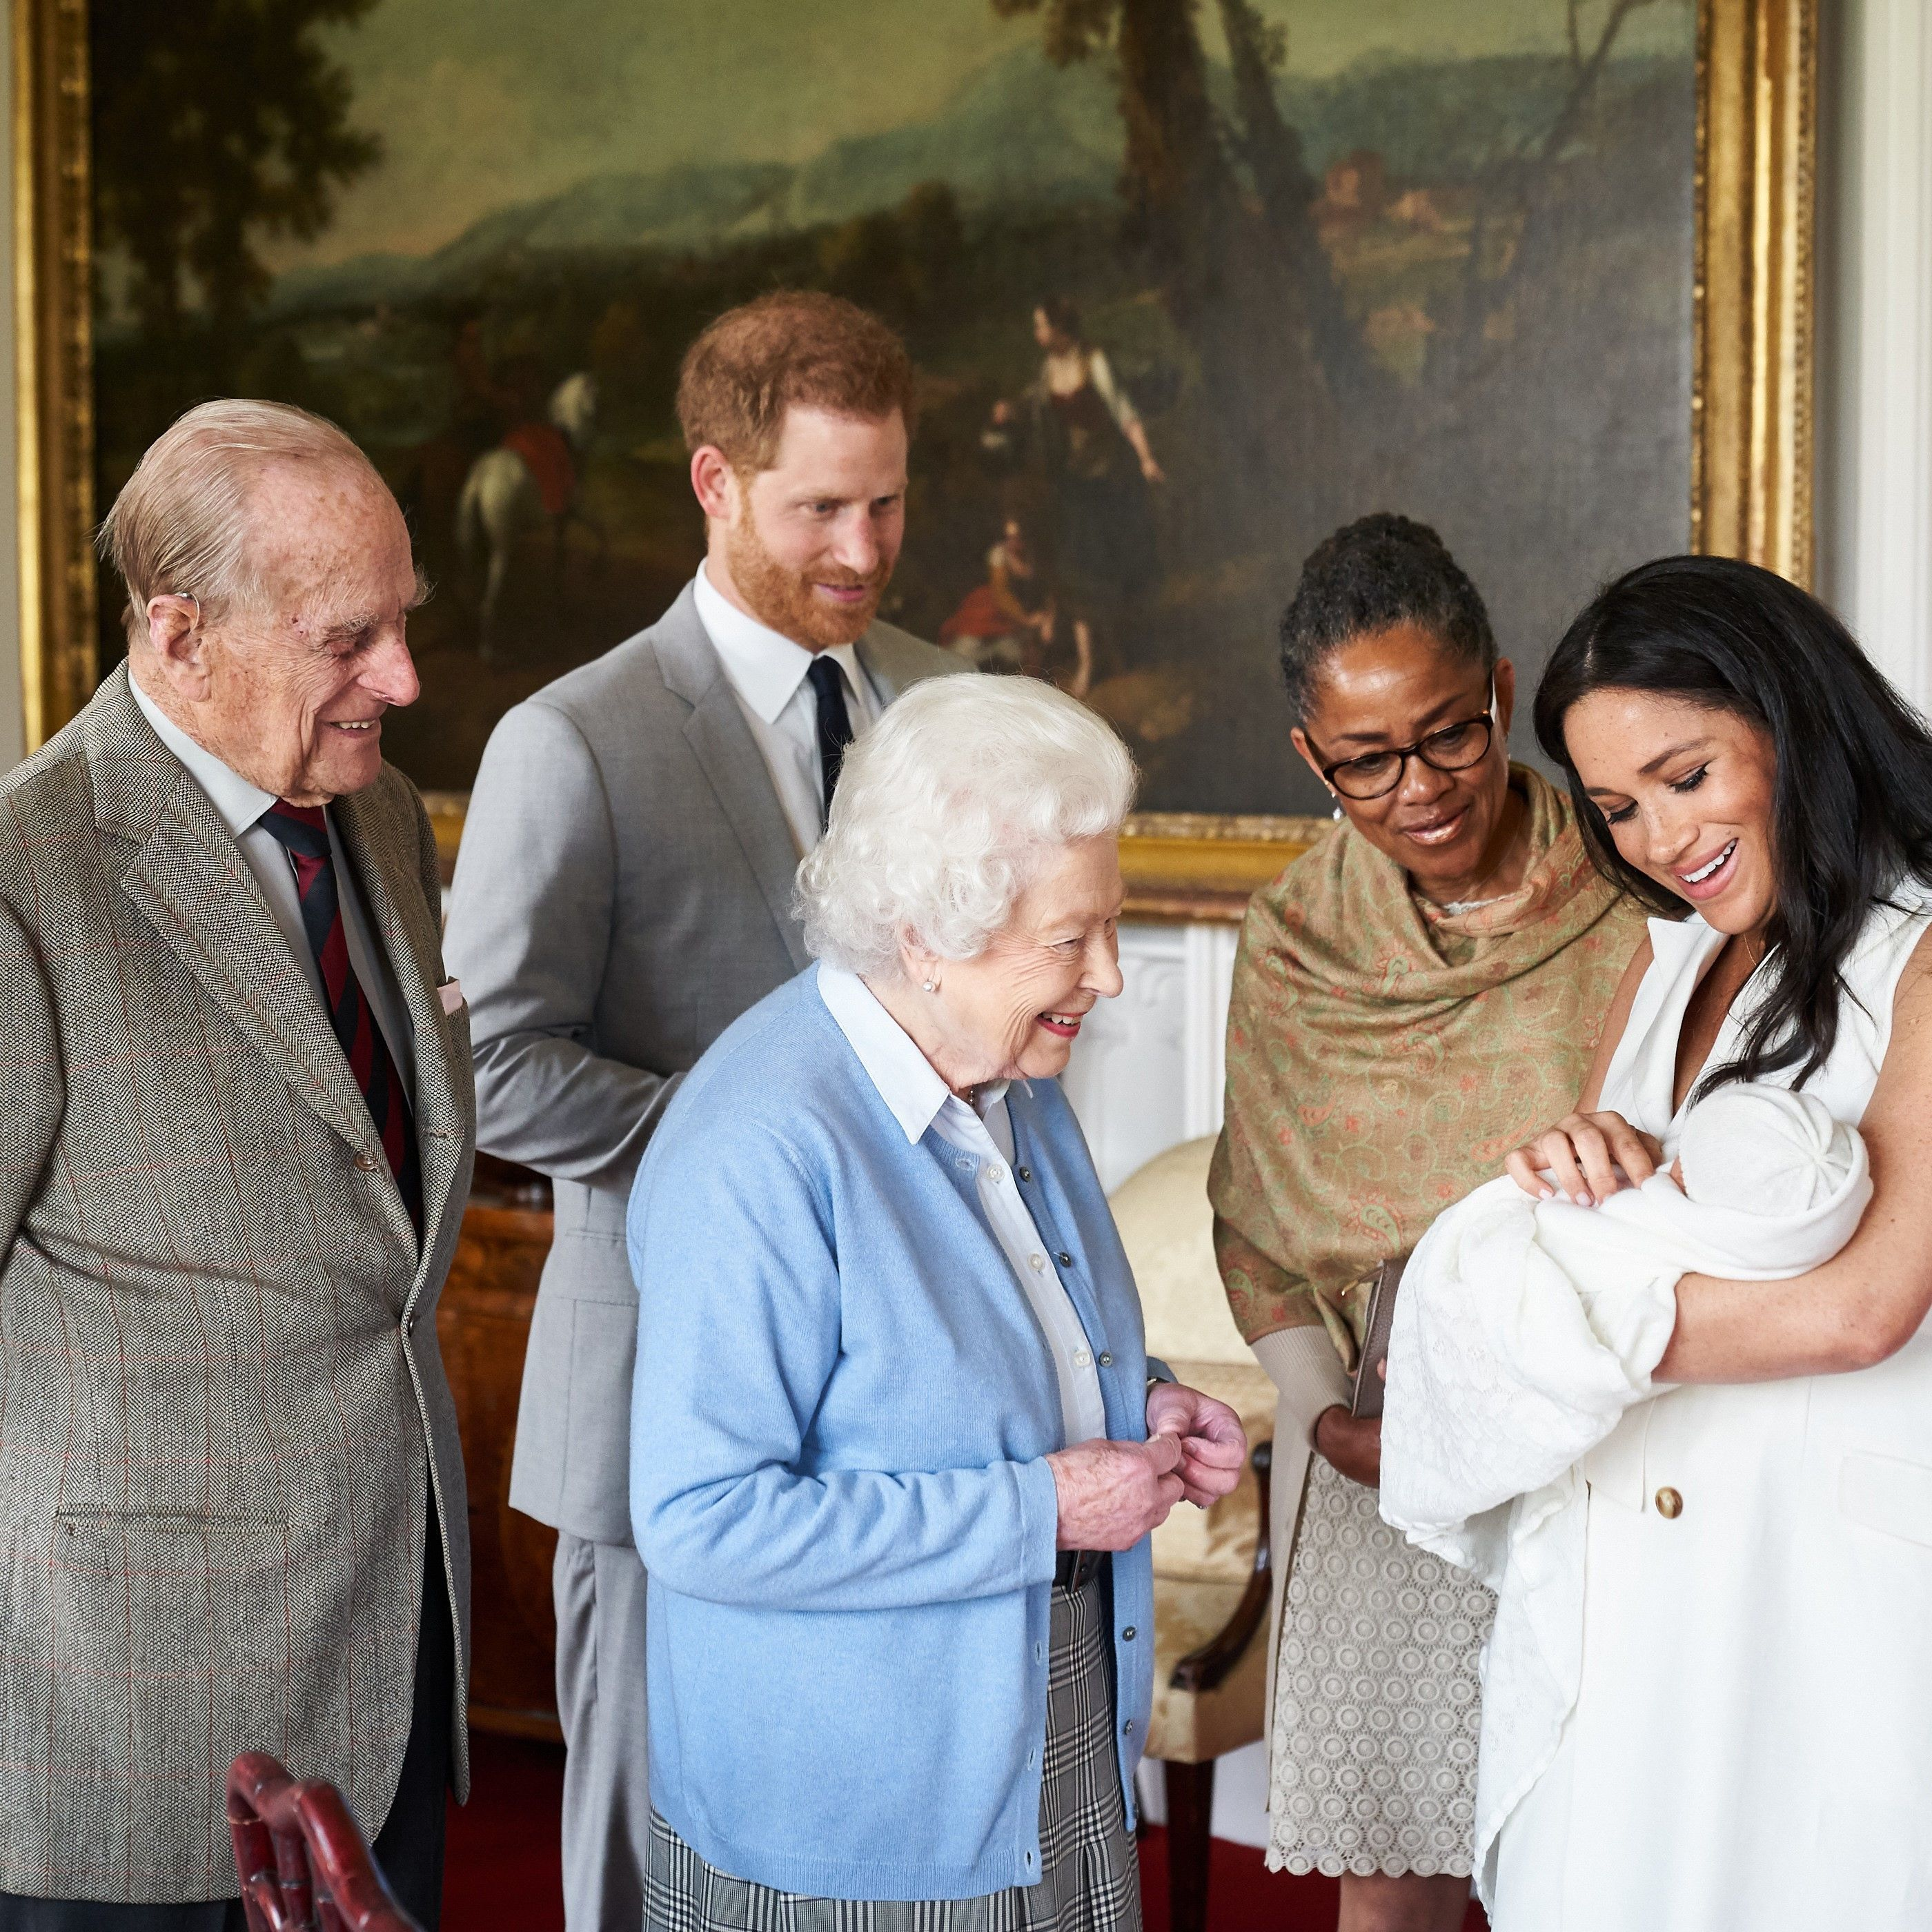 Royal Baby Archie Could Have a Prince Title Someday—But There's a Catch